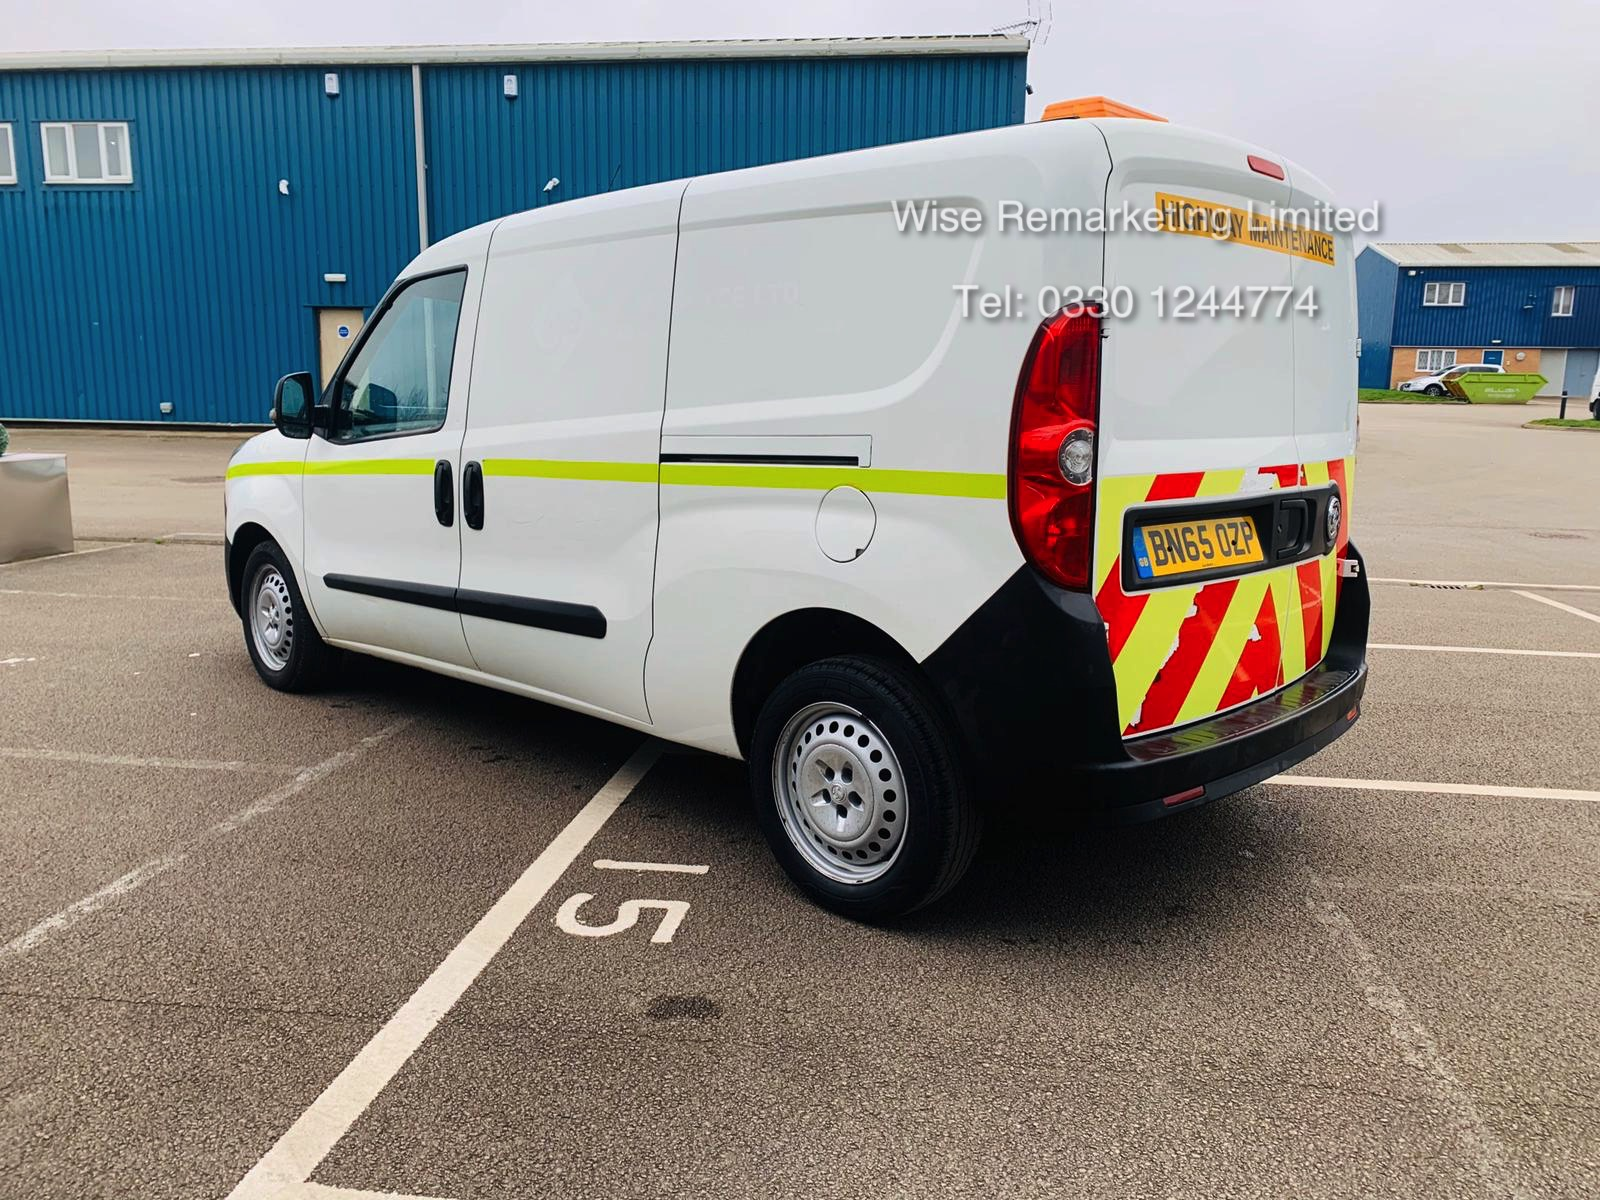 Vauxhall Combo 2300 1.6 CDTI Long - 2016 Model - 1 Keeper From New - Twin Doors - Ply Lined - Image 4 of 21